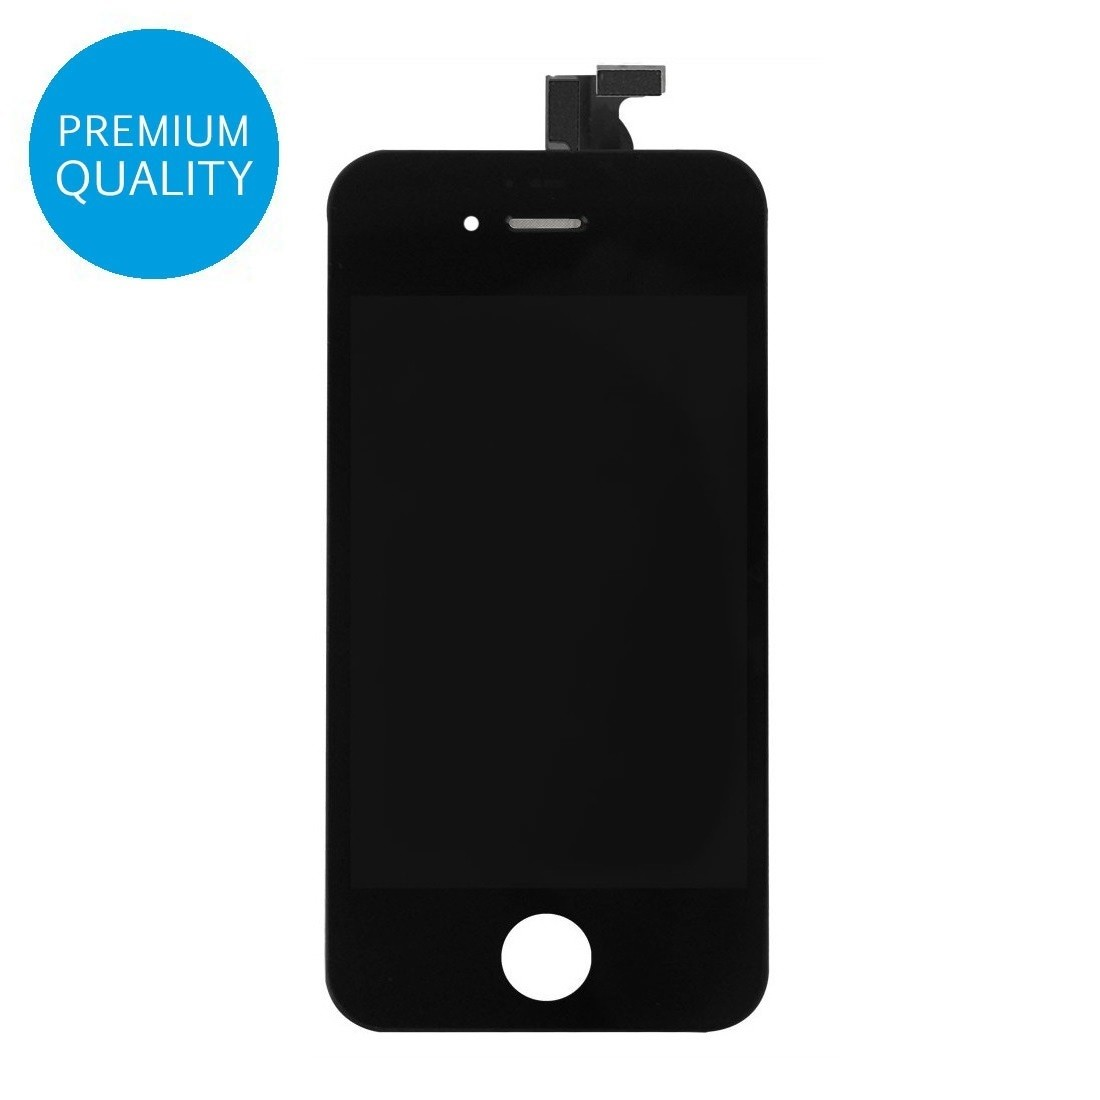 High Quality Touch Screen Digitizer LCD Replacement for iPhone 4 Black